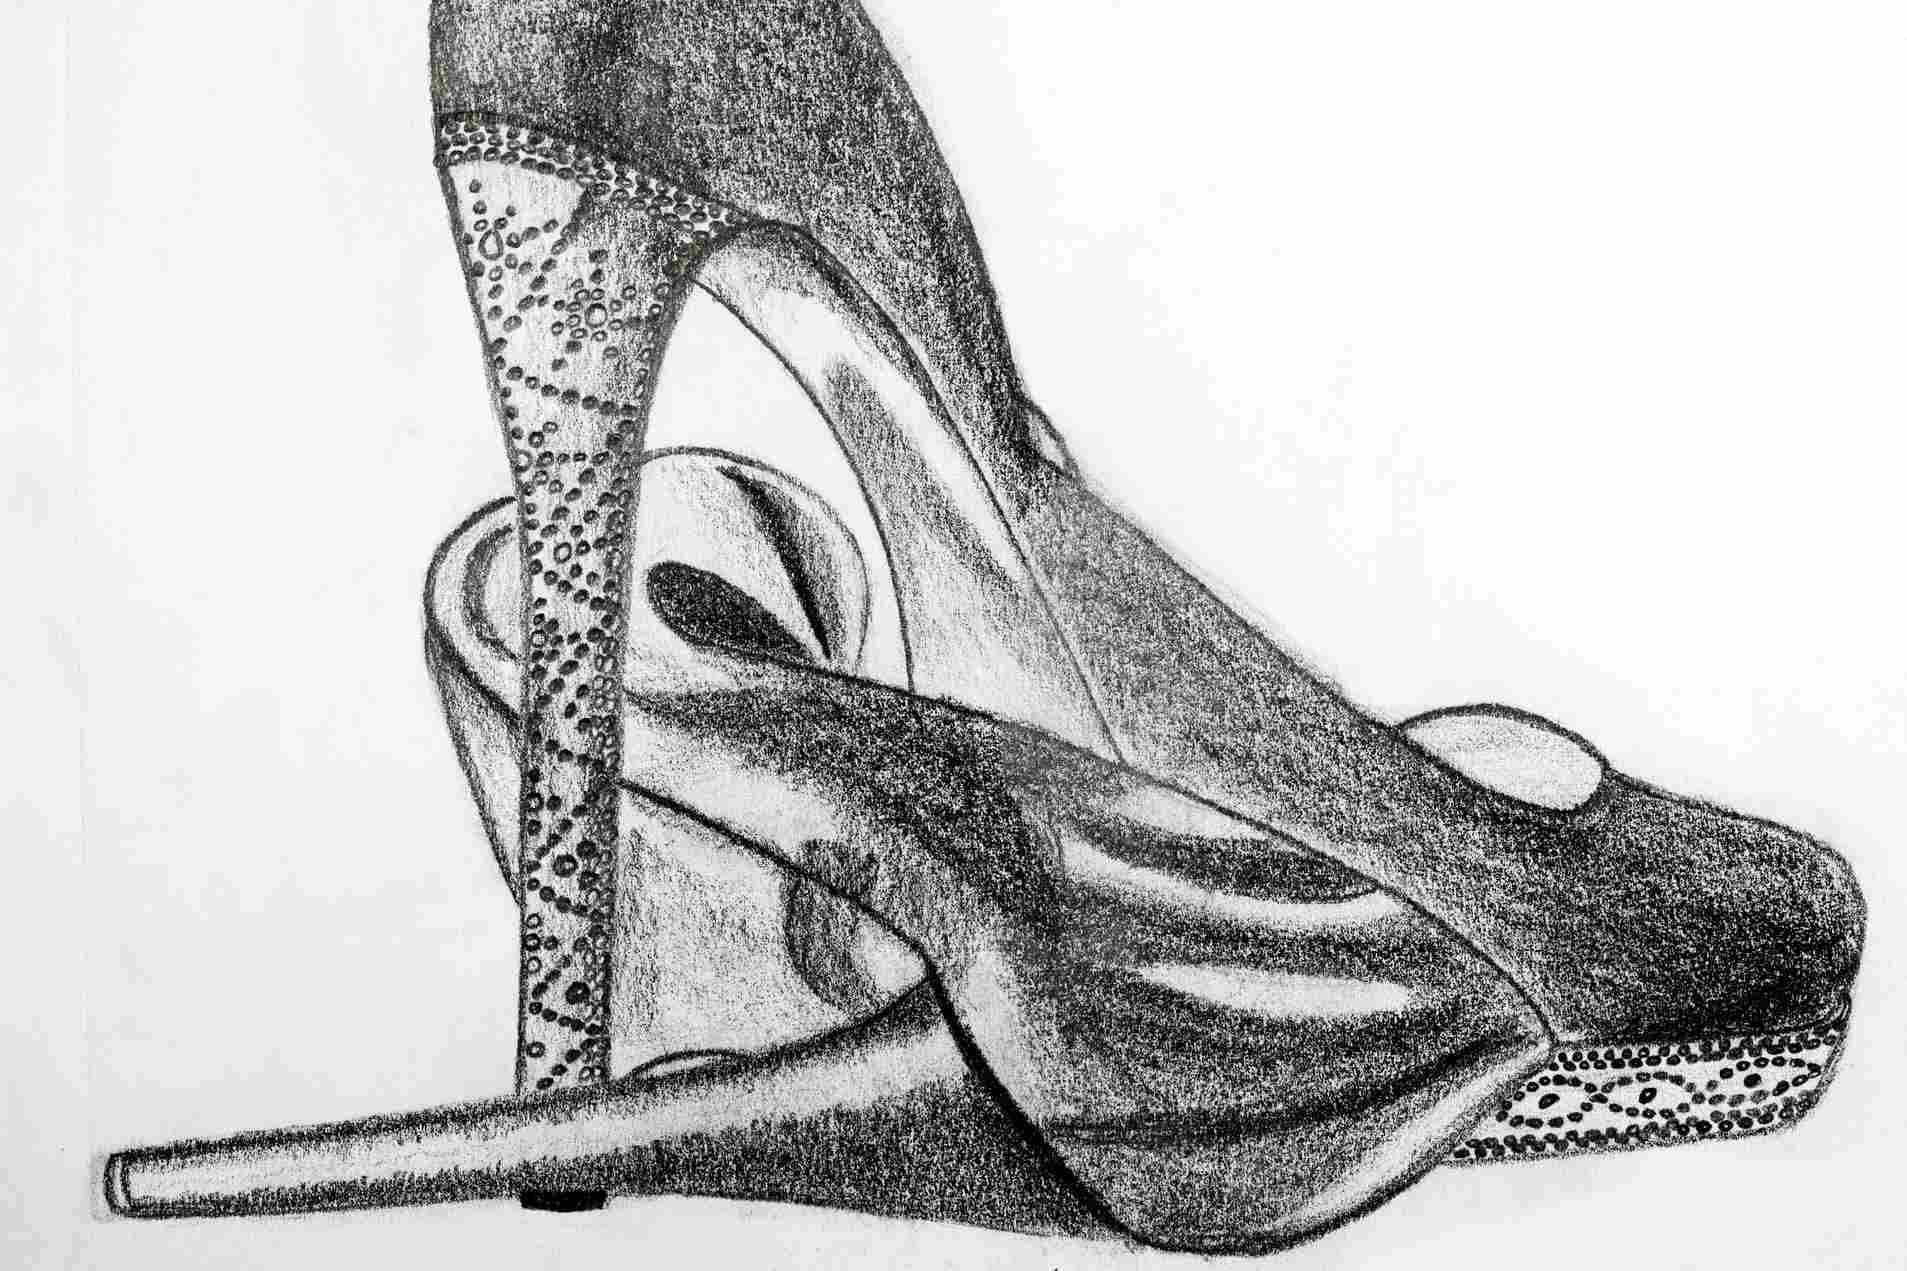 Charcoal drawing of high heels